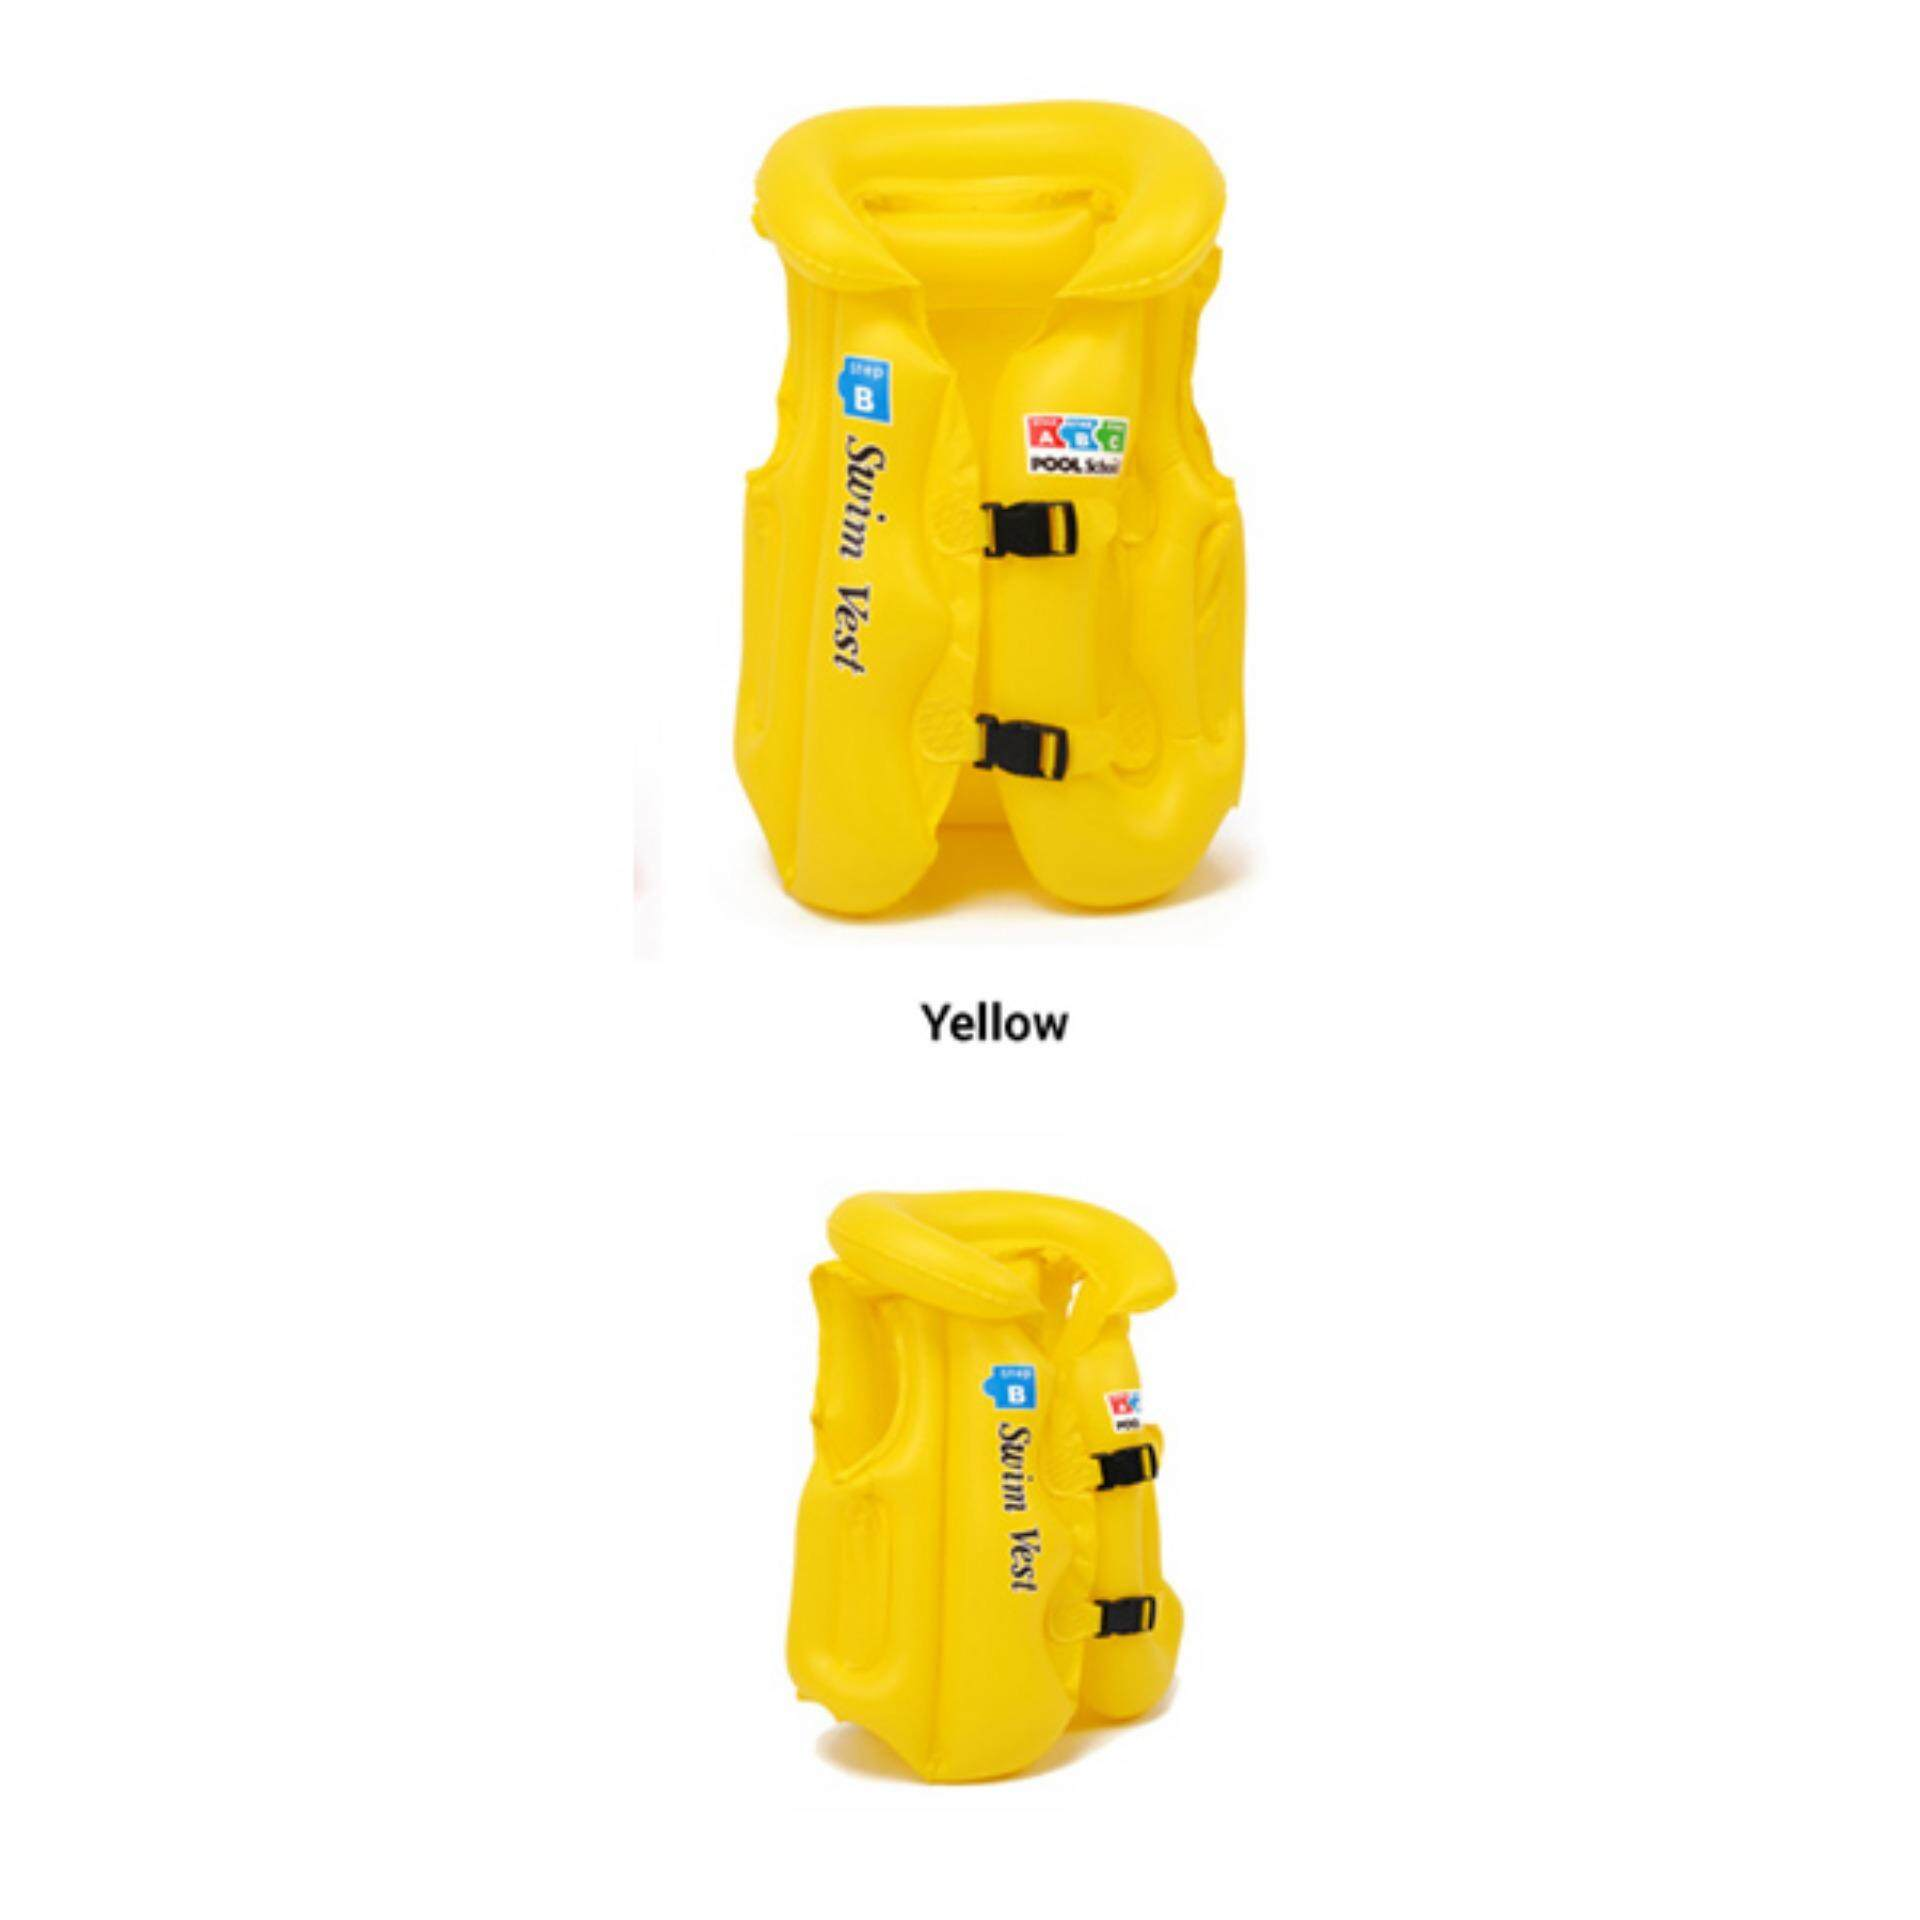 Realeos Inflatable Swimming Newborn Baby Kids Safety Life Jacket - R752 By Realeos.